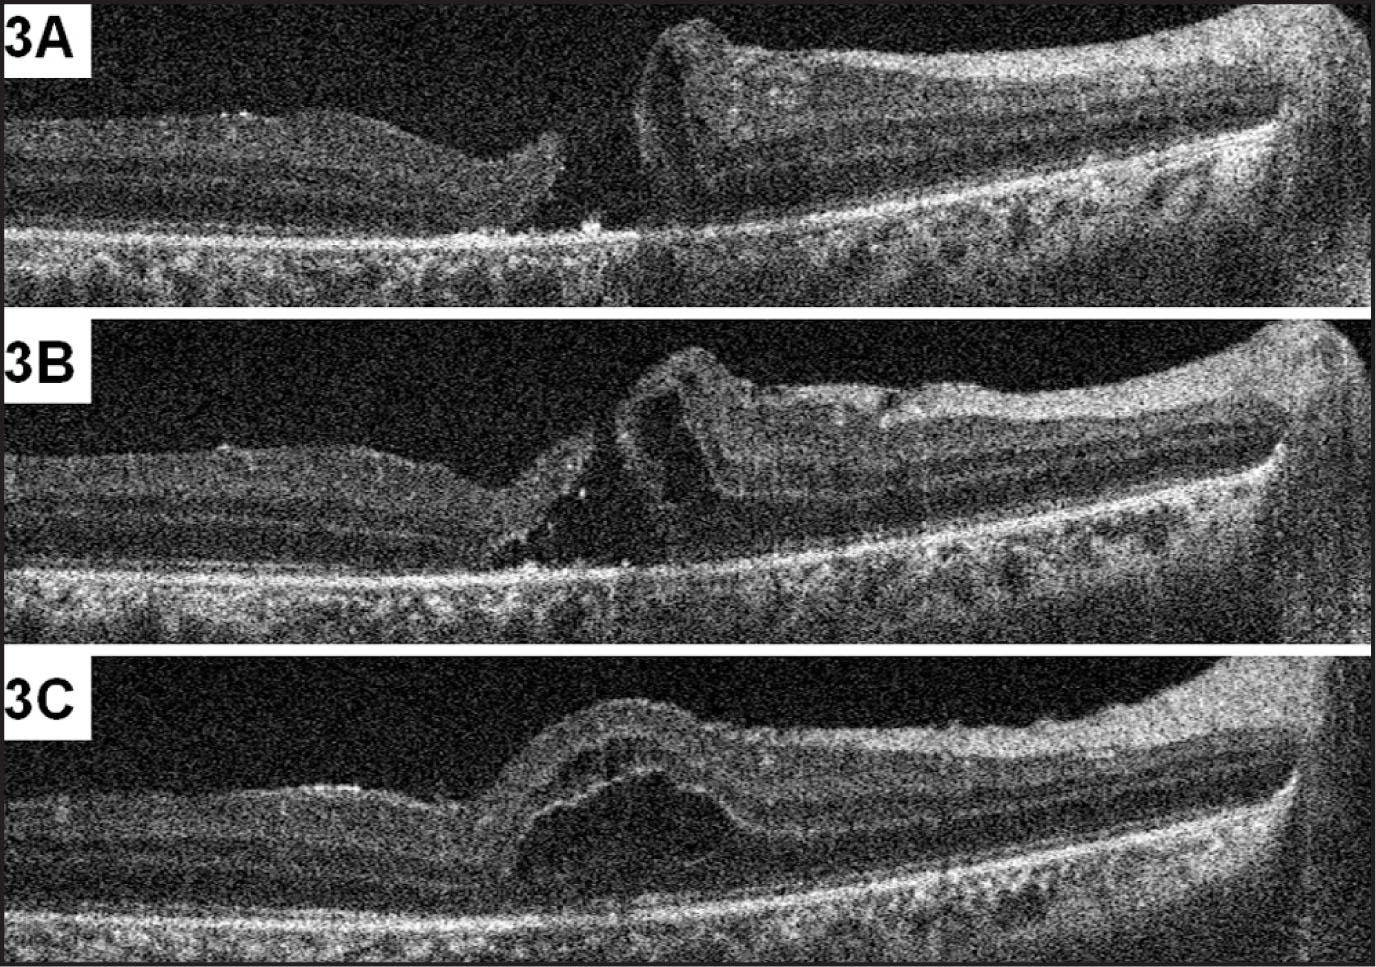 Intraoperative, Pre-Vitrectomy, and Pre-Internal Limiting Membrane Peeling, Spectral-Domain Optical Coherence Tomography (SD-OCT) (Bioptigen, Research Triangle Park, NC) Analysis of the Left Eye. (A) SD-OCT Through the Fovea Shows the Full-Thickness Macular Hole. (B) SD-OCT Just Superior to the Fovea Shows Subretinal and Intraretinal Fluid. (C) SD-OCT Just Superior to (B) Shows Intraretinal Cystic Fluid.